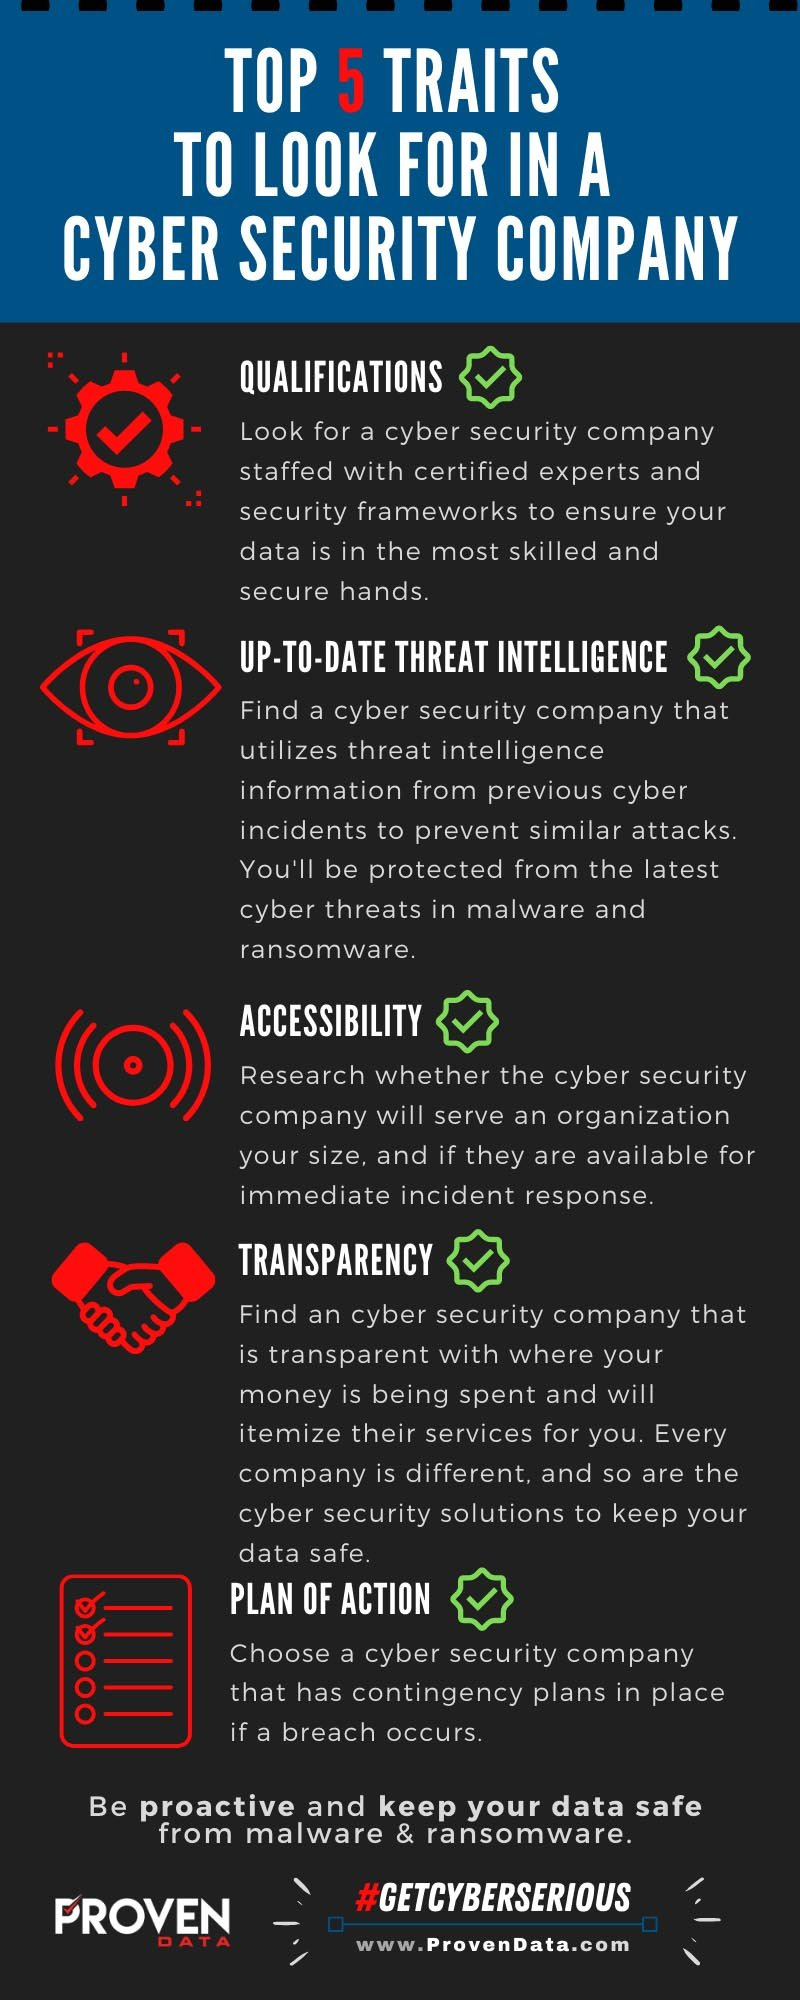 Top 5 Traits to Look for in a Cyber security Company